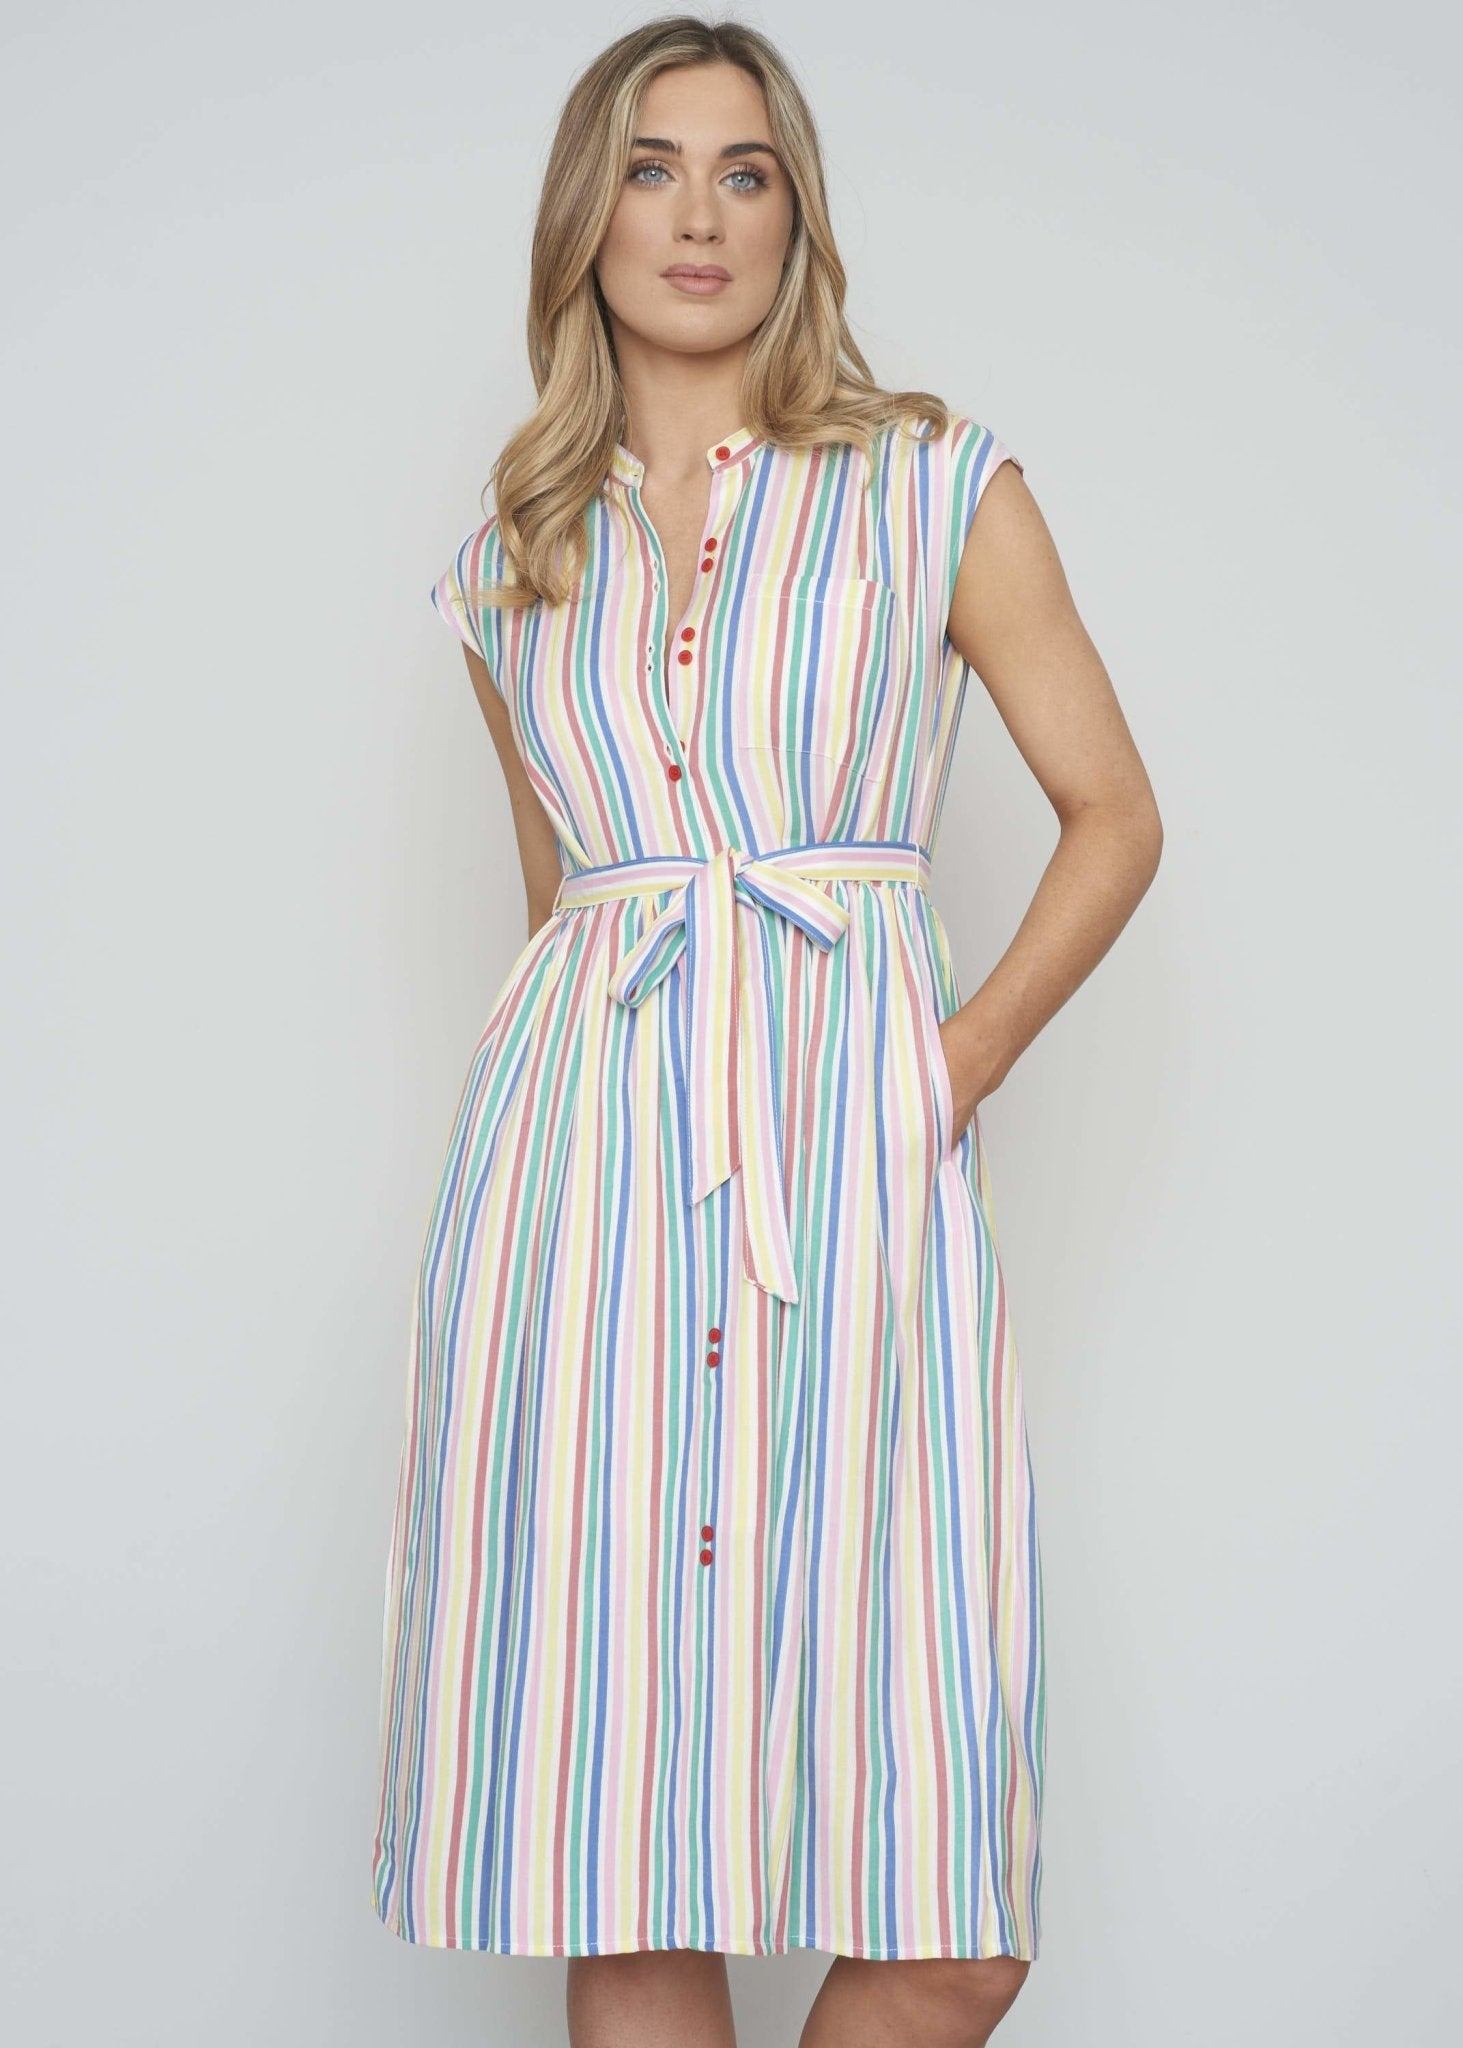 Frankie Stripe Shirt Dress In Multicolour - The Walk in Wardrobe